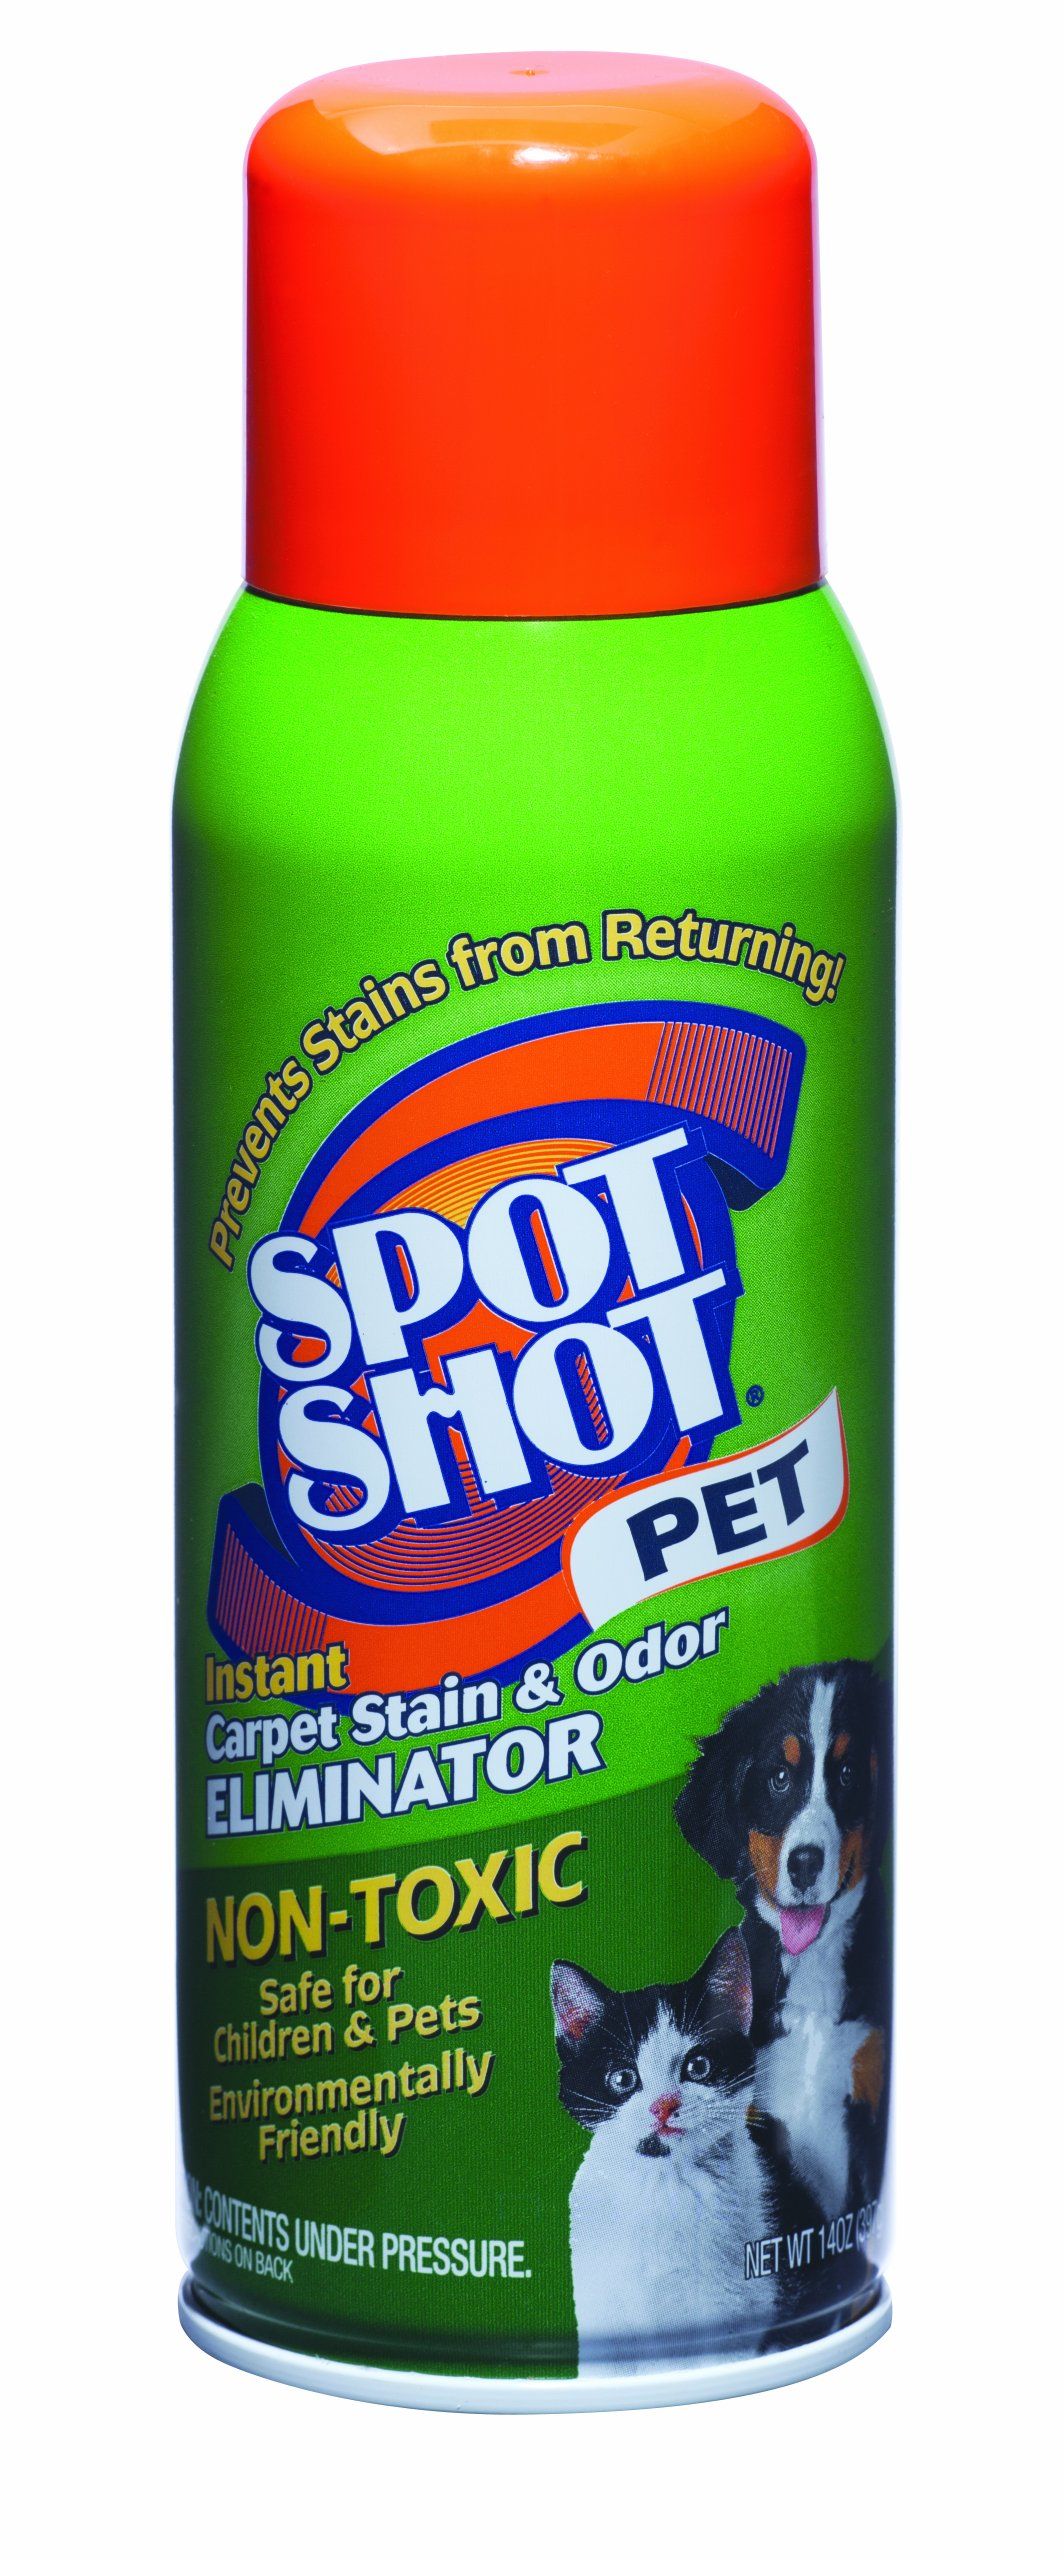 Spot Shot 009208 Non-Toxic Pet Instant Carpet Stain Remover 14 oz Aerosol (Pack of 6)